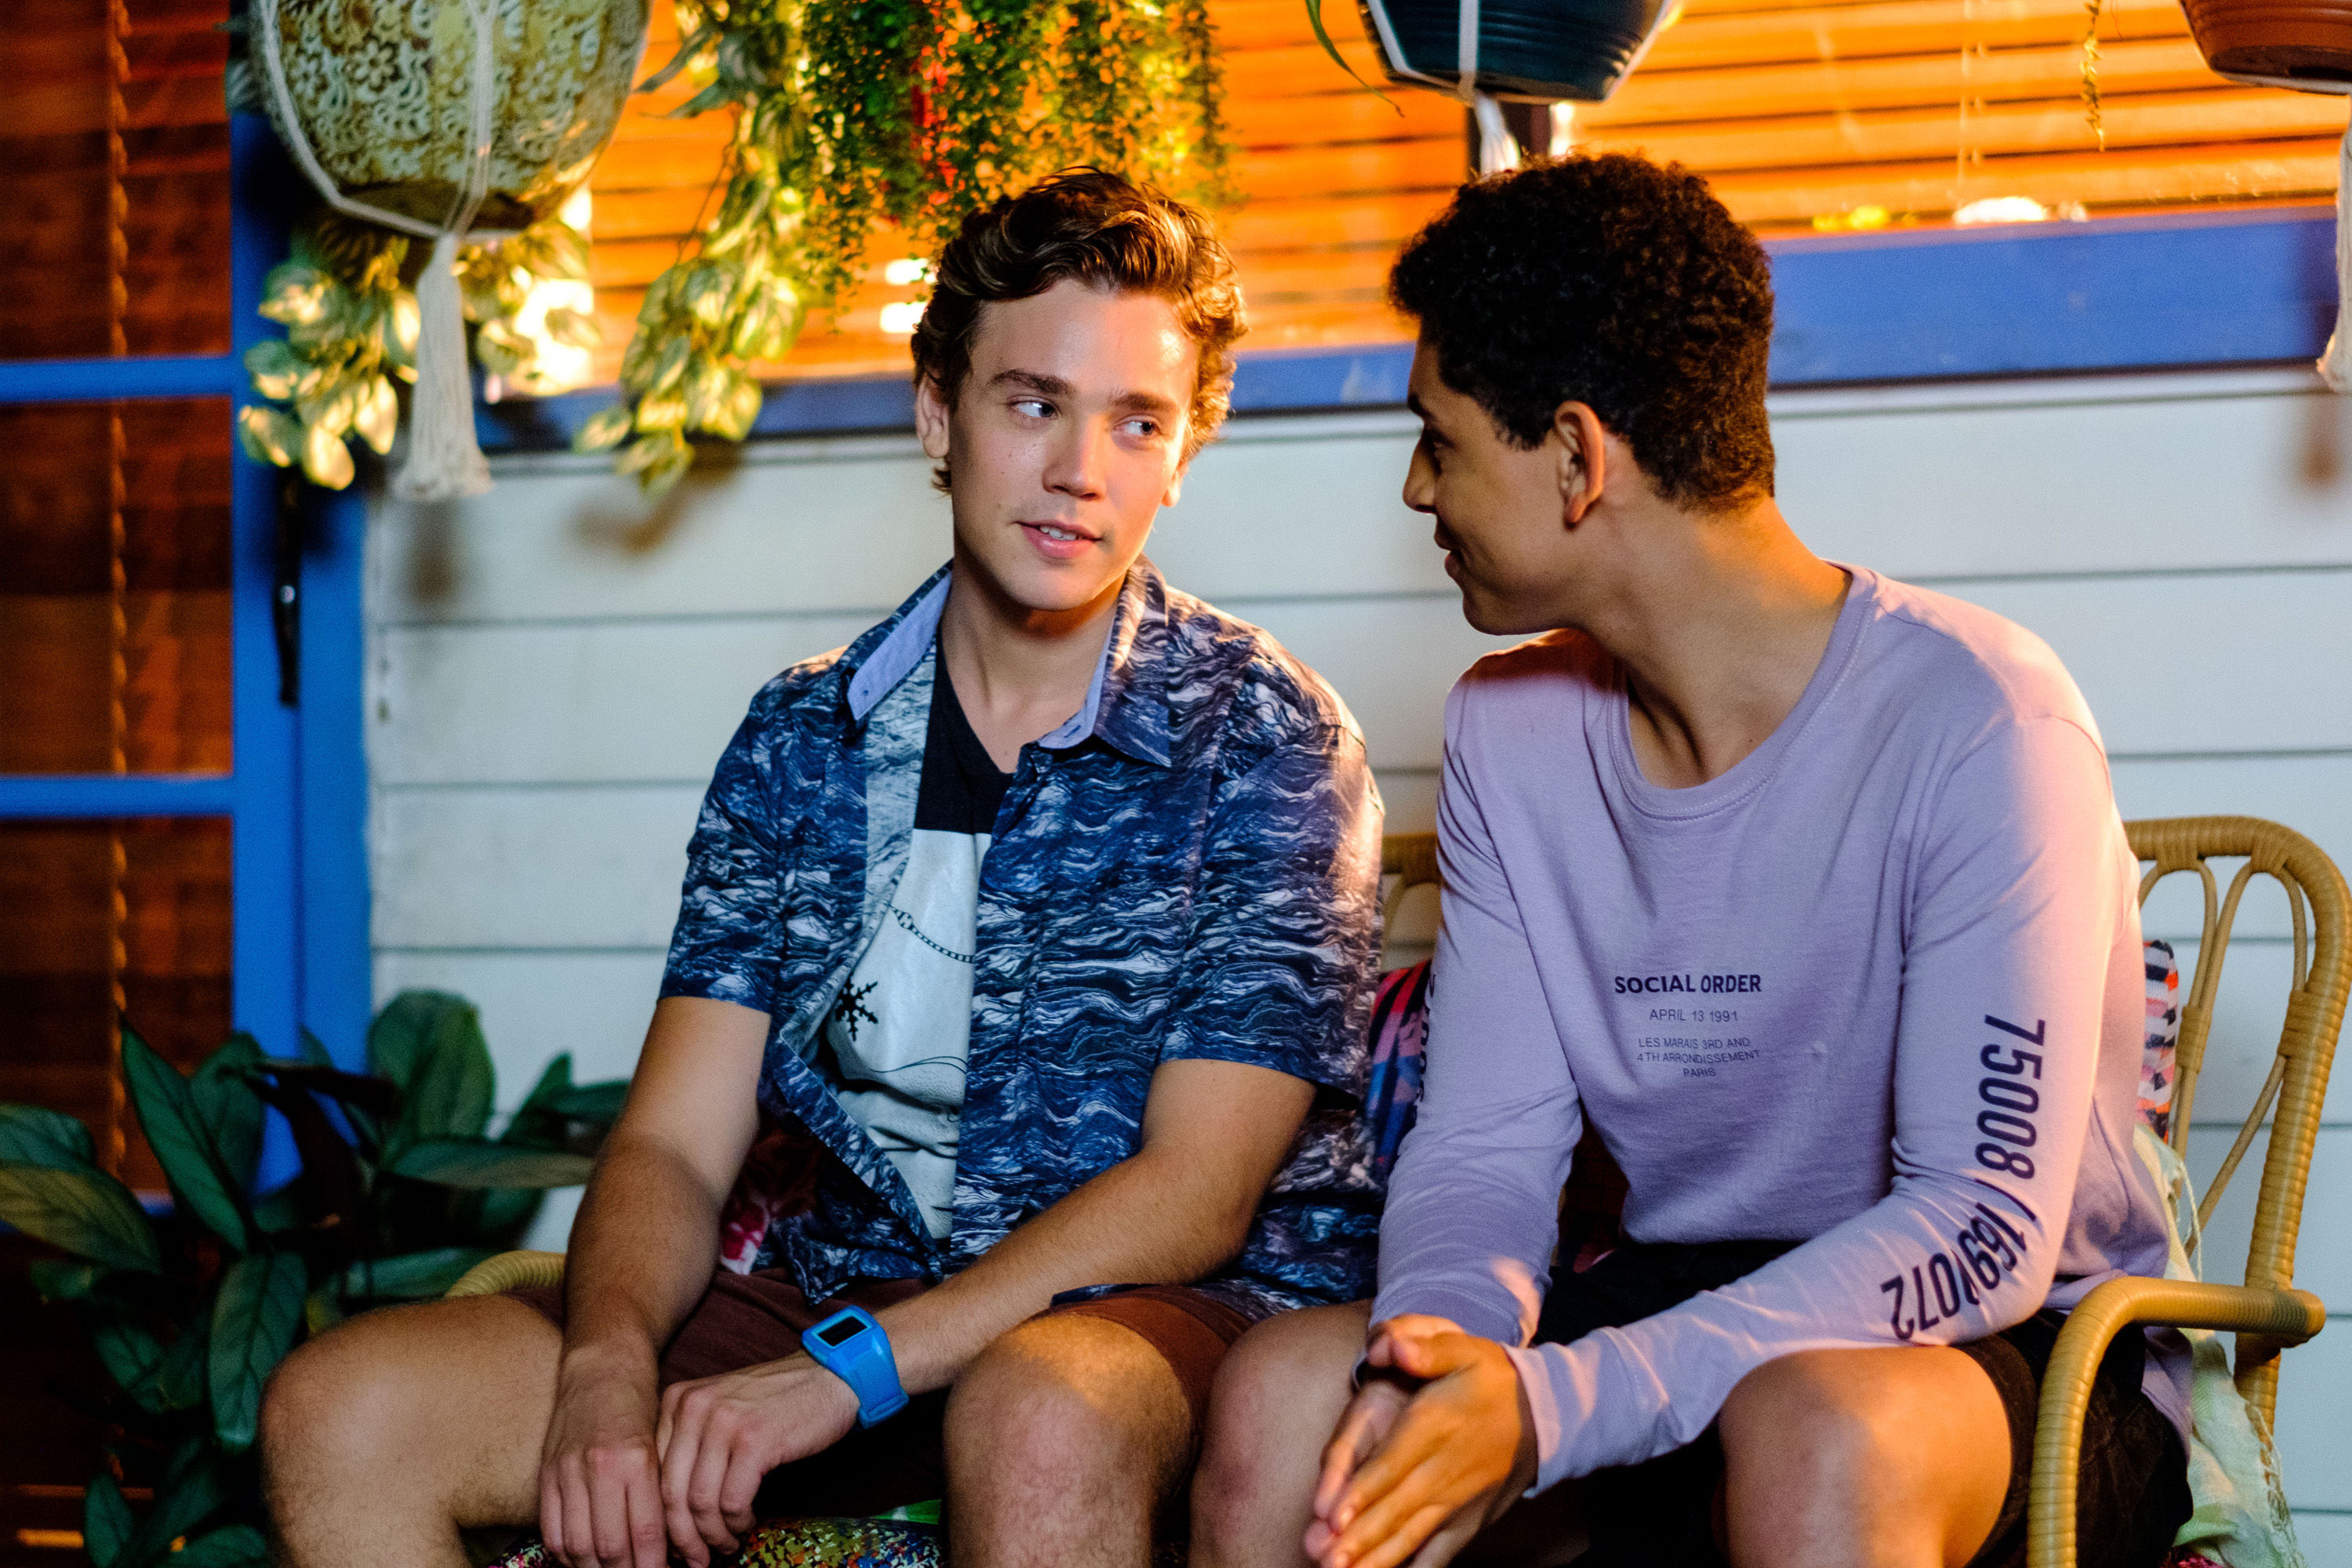 Home and Away spoilers: Ty kisses Ryder in an explosive coming out storyline